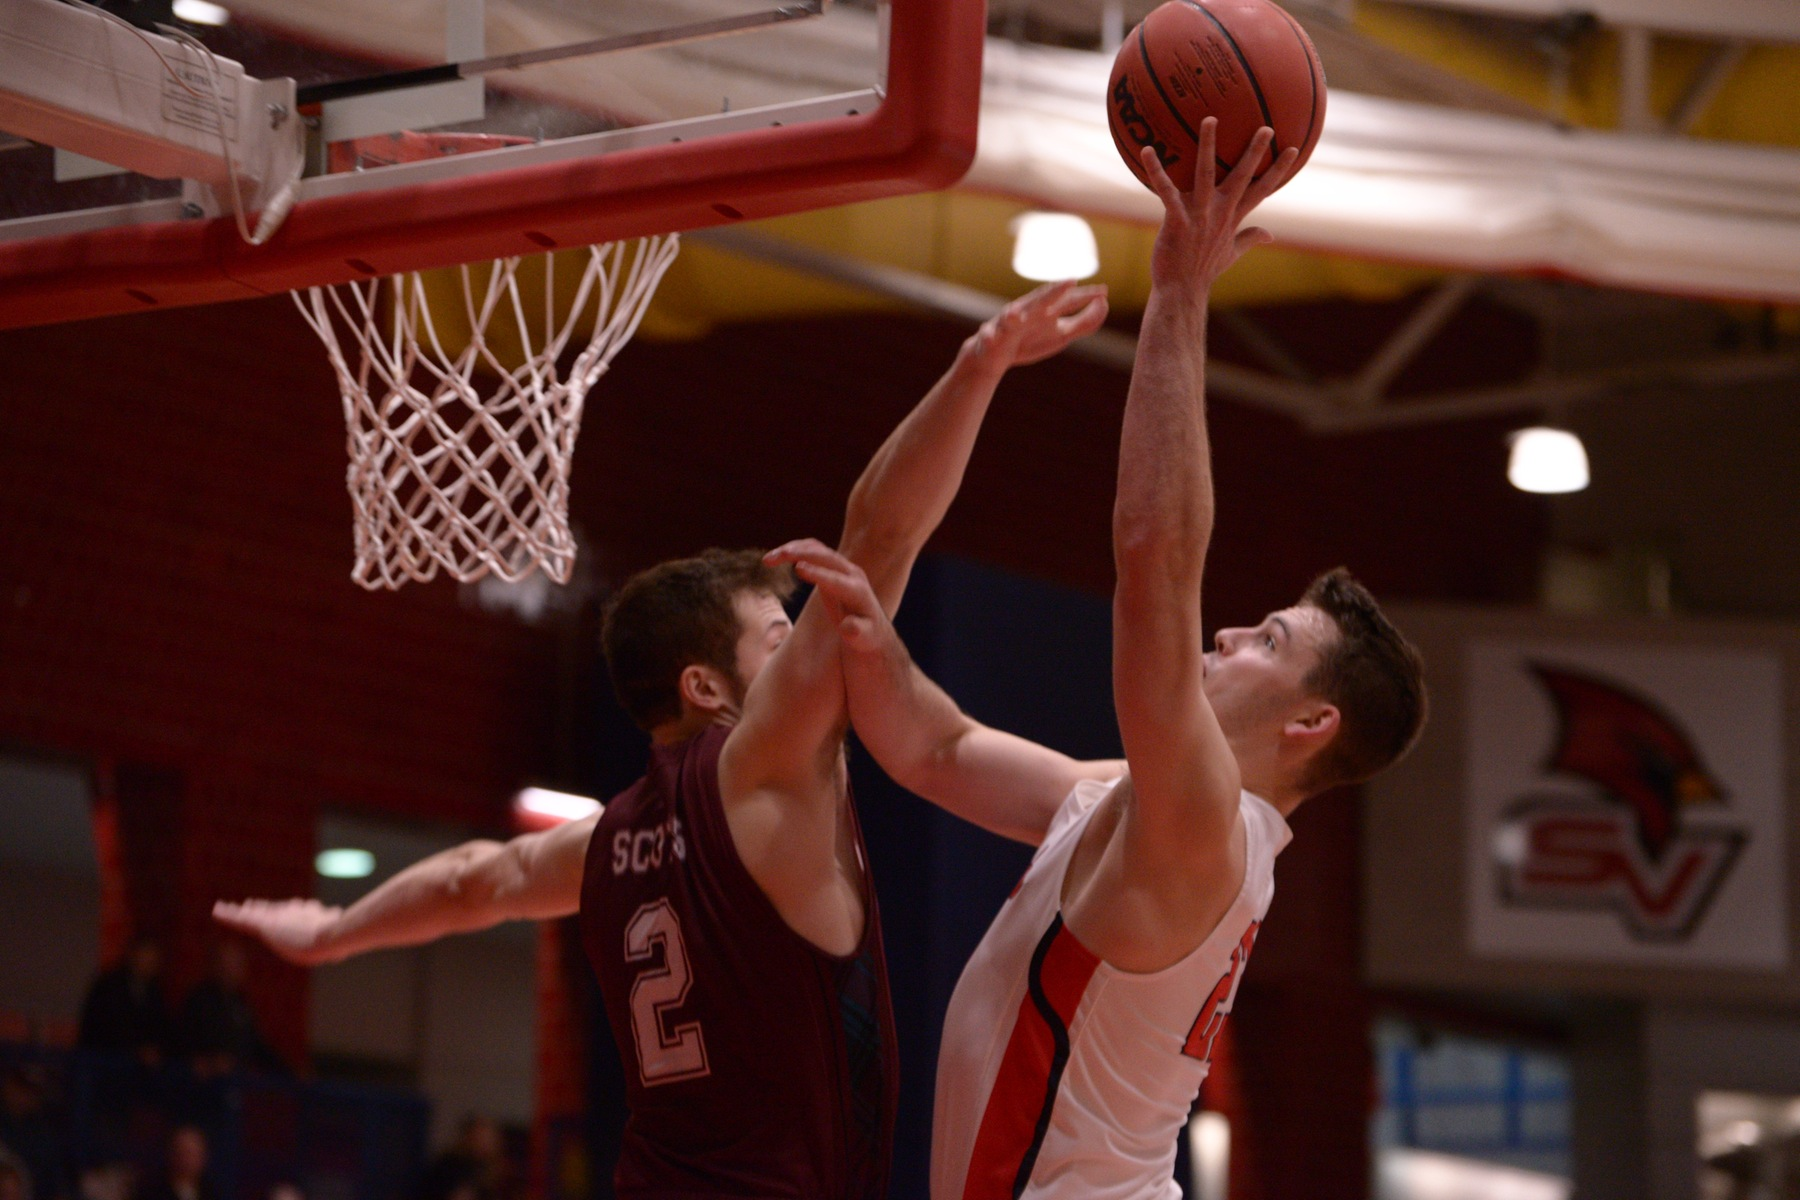 Strong second half propels SVSU Men to 79-72 victory over Rangers